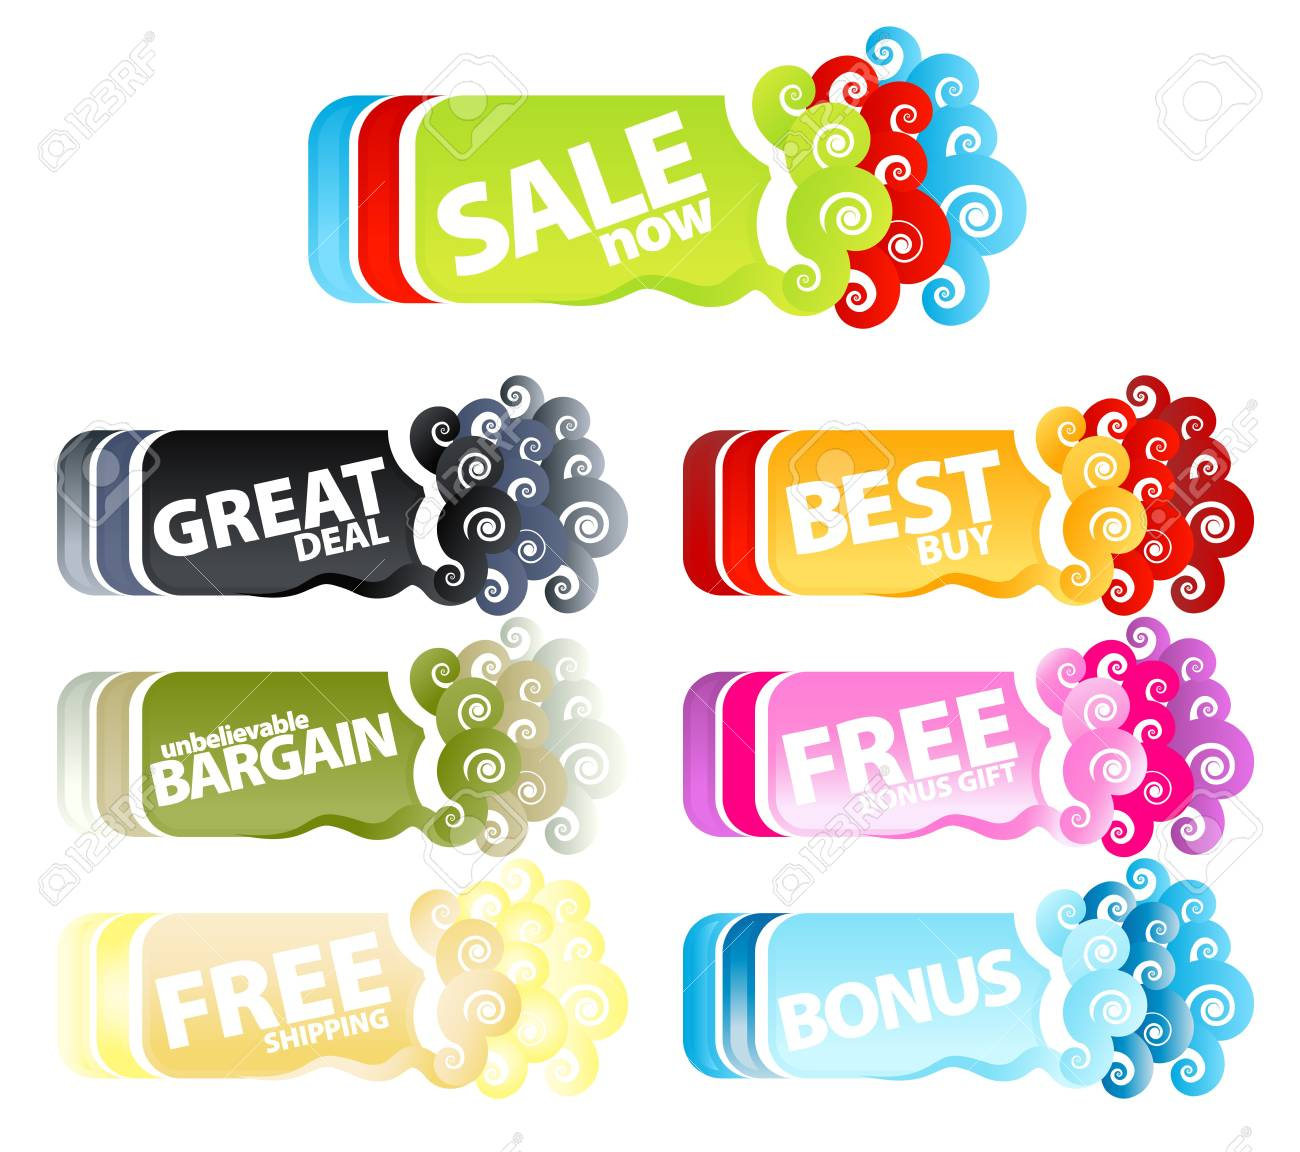 Vector illustration of a colorful collection of funky swirly retail tags or banners. - 3983646